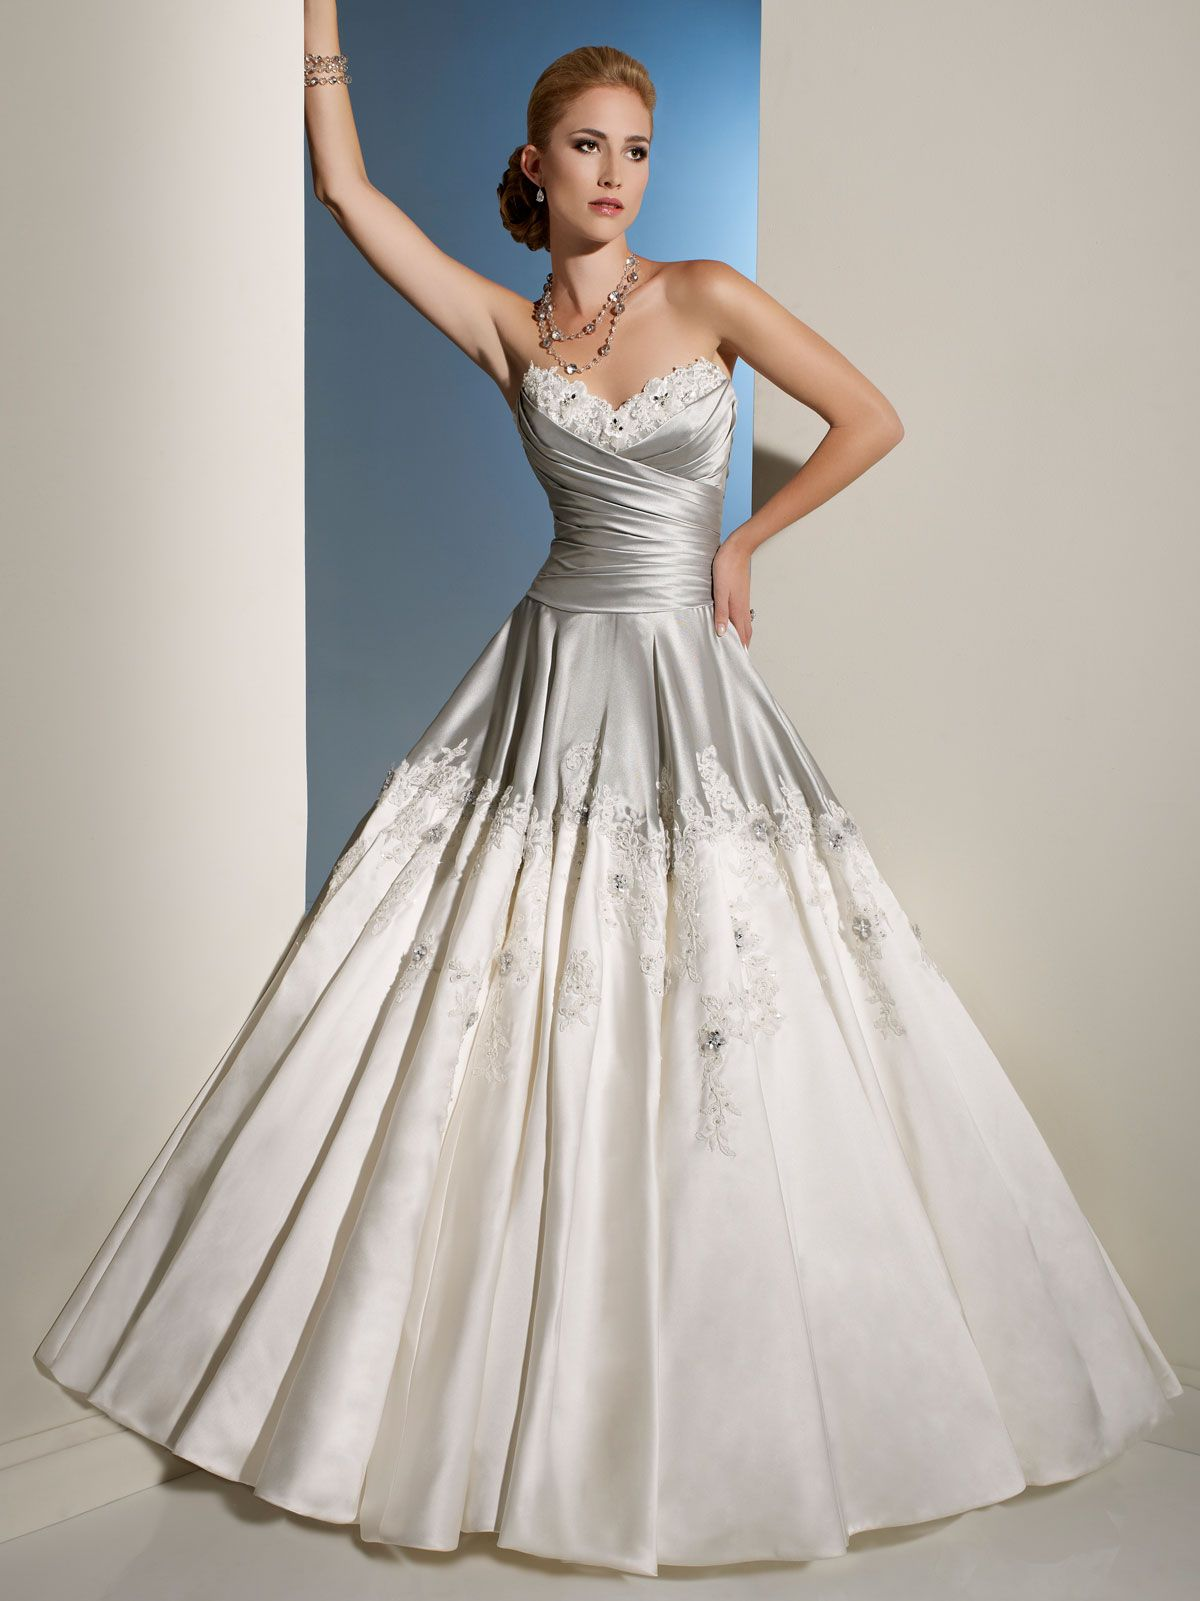 Wedding Silver Wedding Dress silver and white draped bodice wedding dress dresses dress